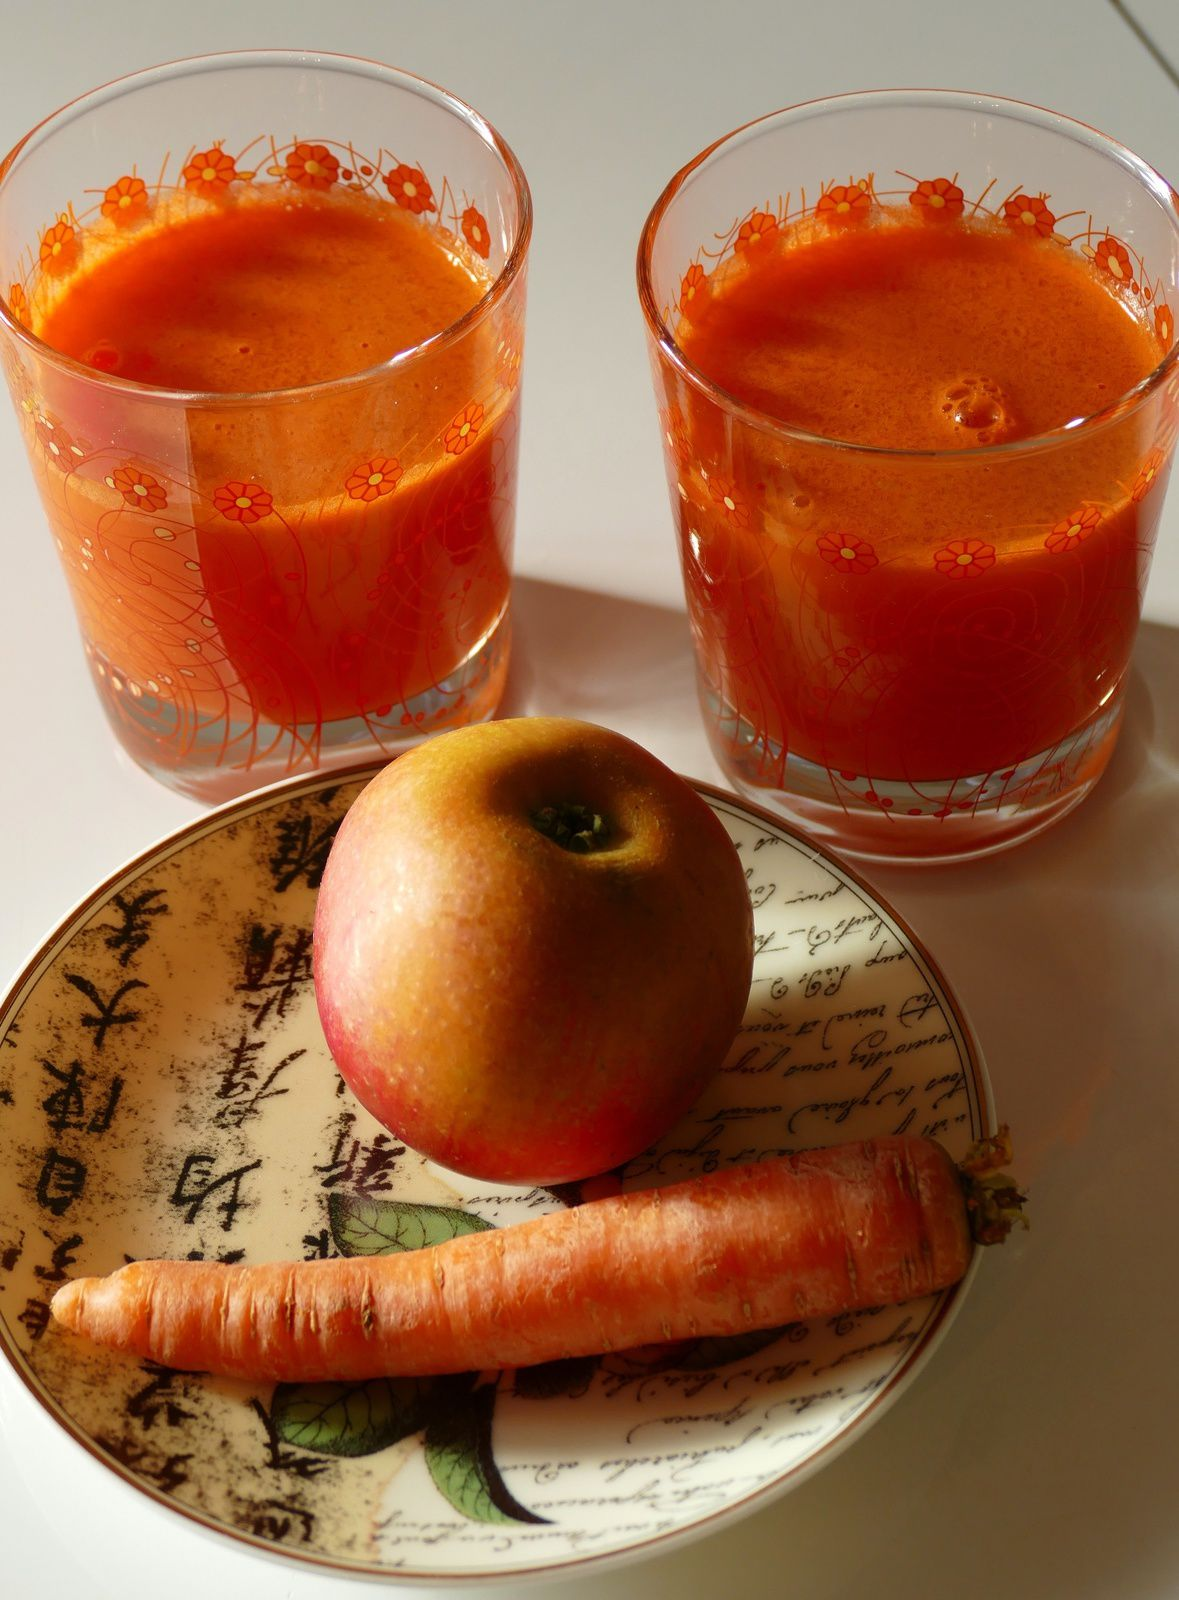 jus orange by Chry ... carottes, pommes, citron bergamote, gingembre